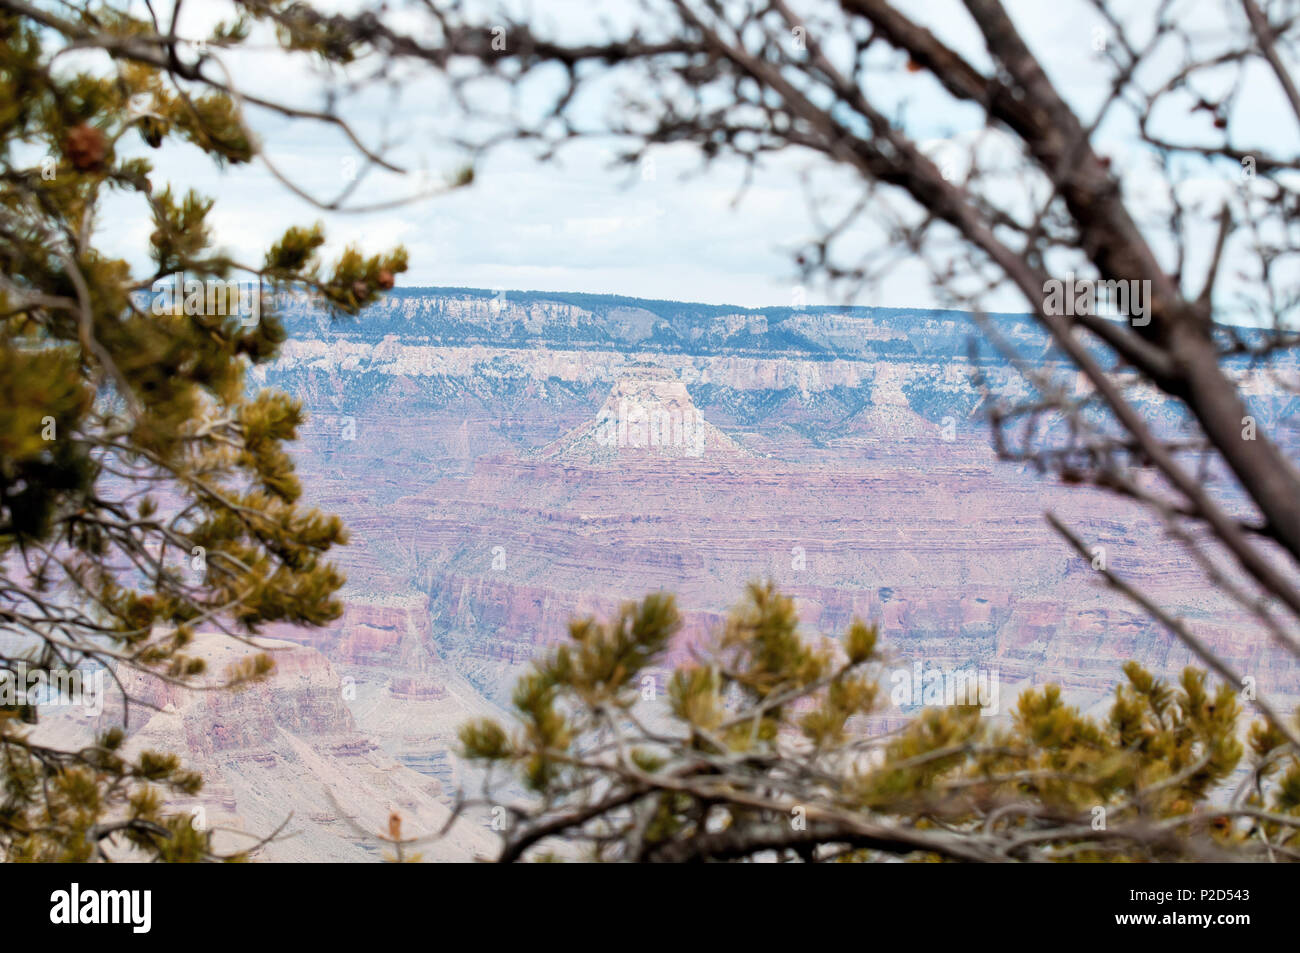 Looking at the grand canyon through trees and shrubbery. - Stock Image